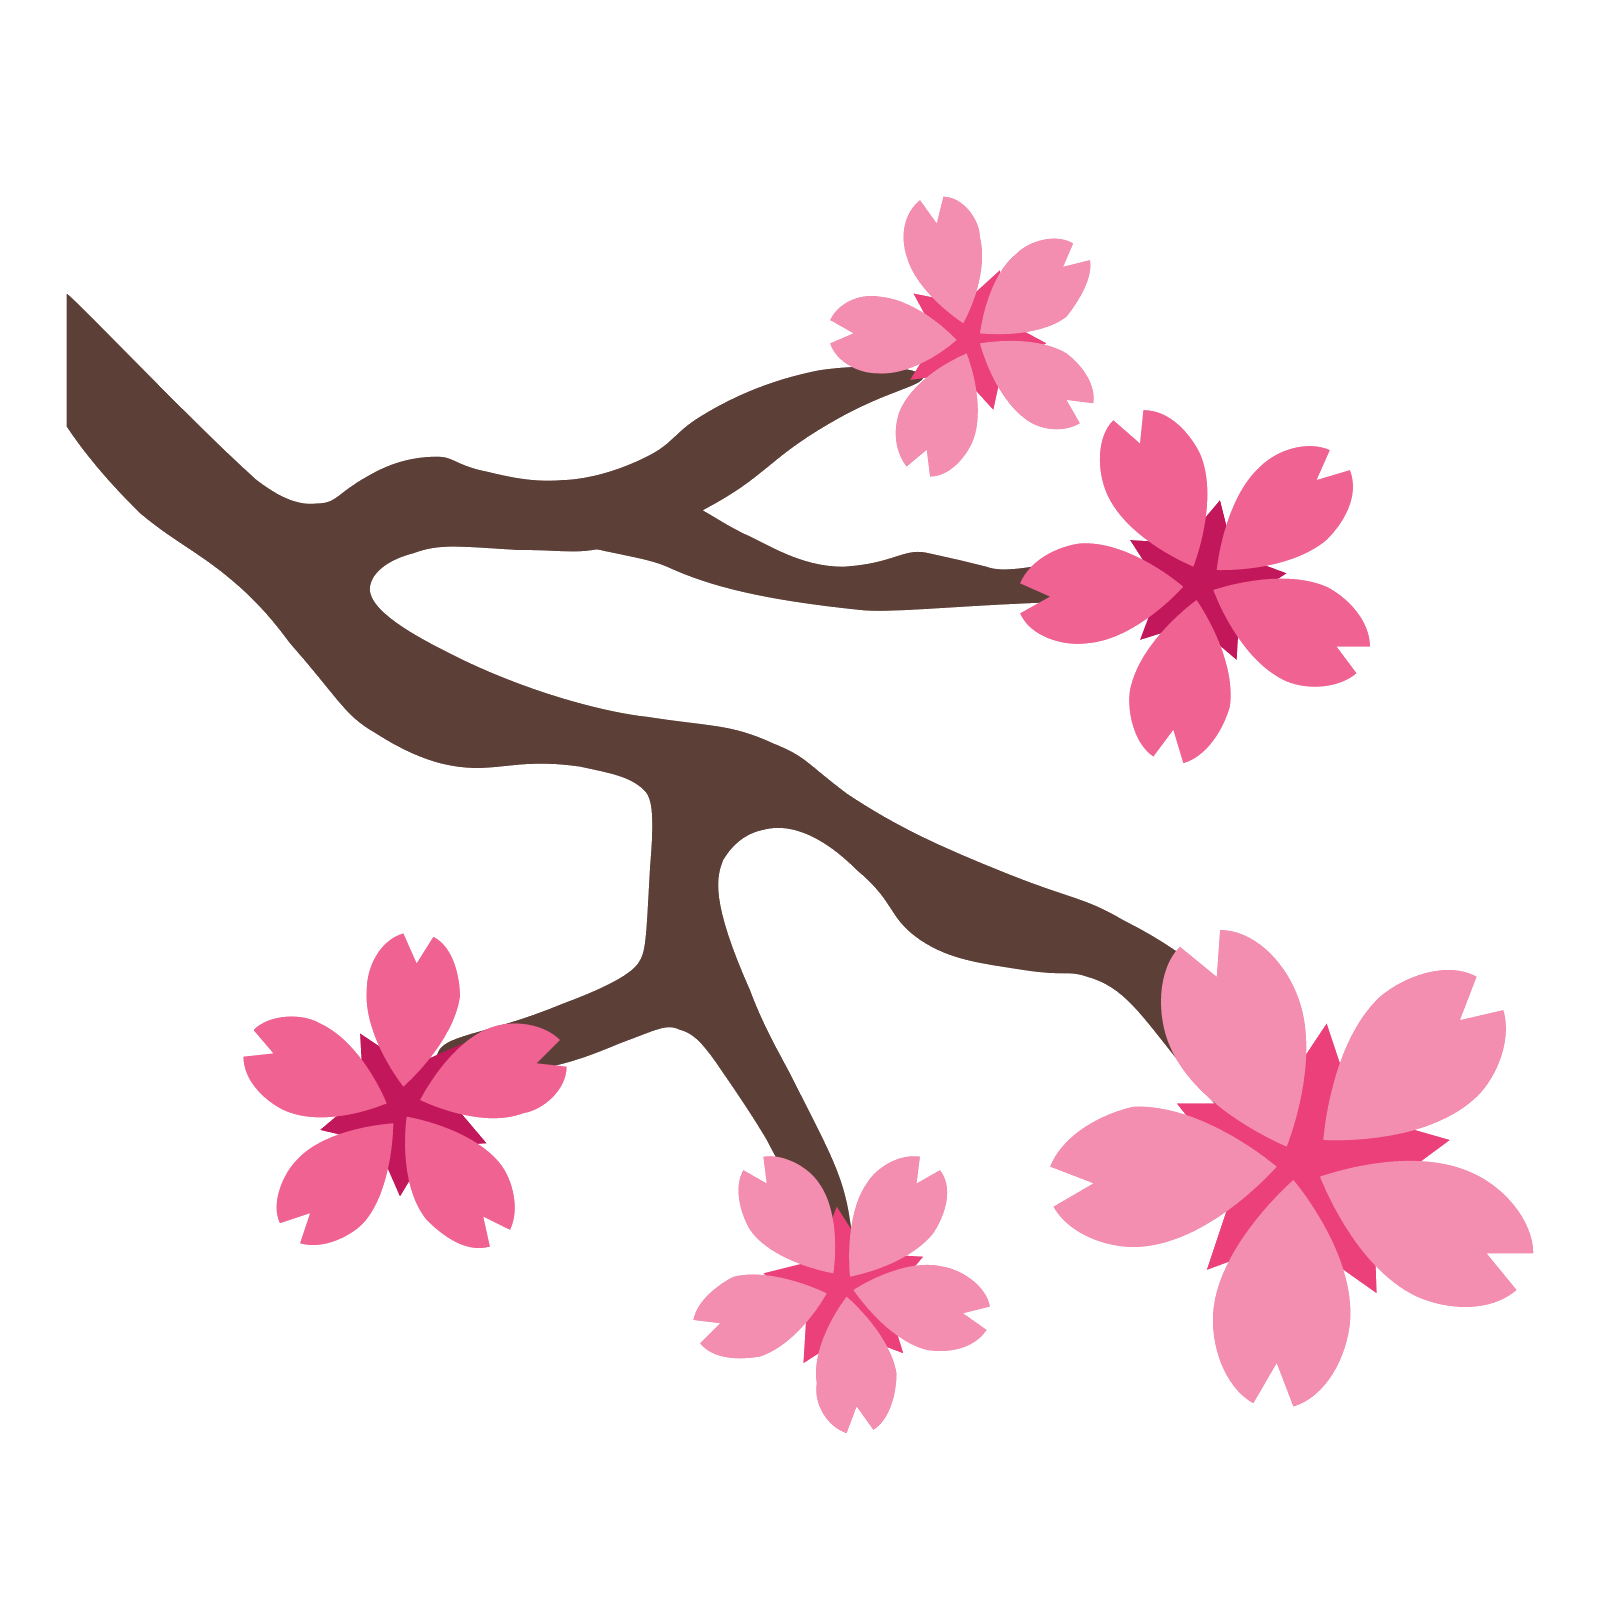 Cherry blossom petals png. Sakura icon free download